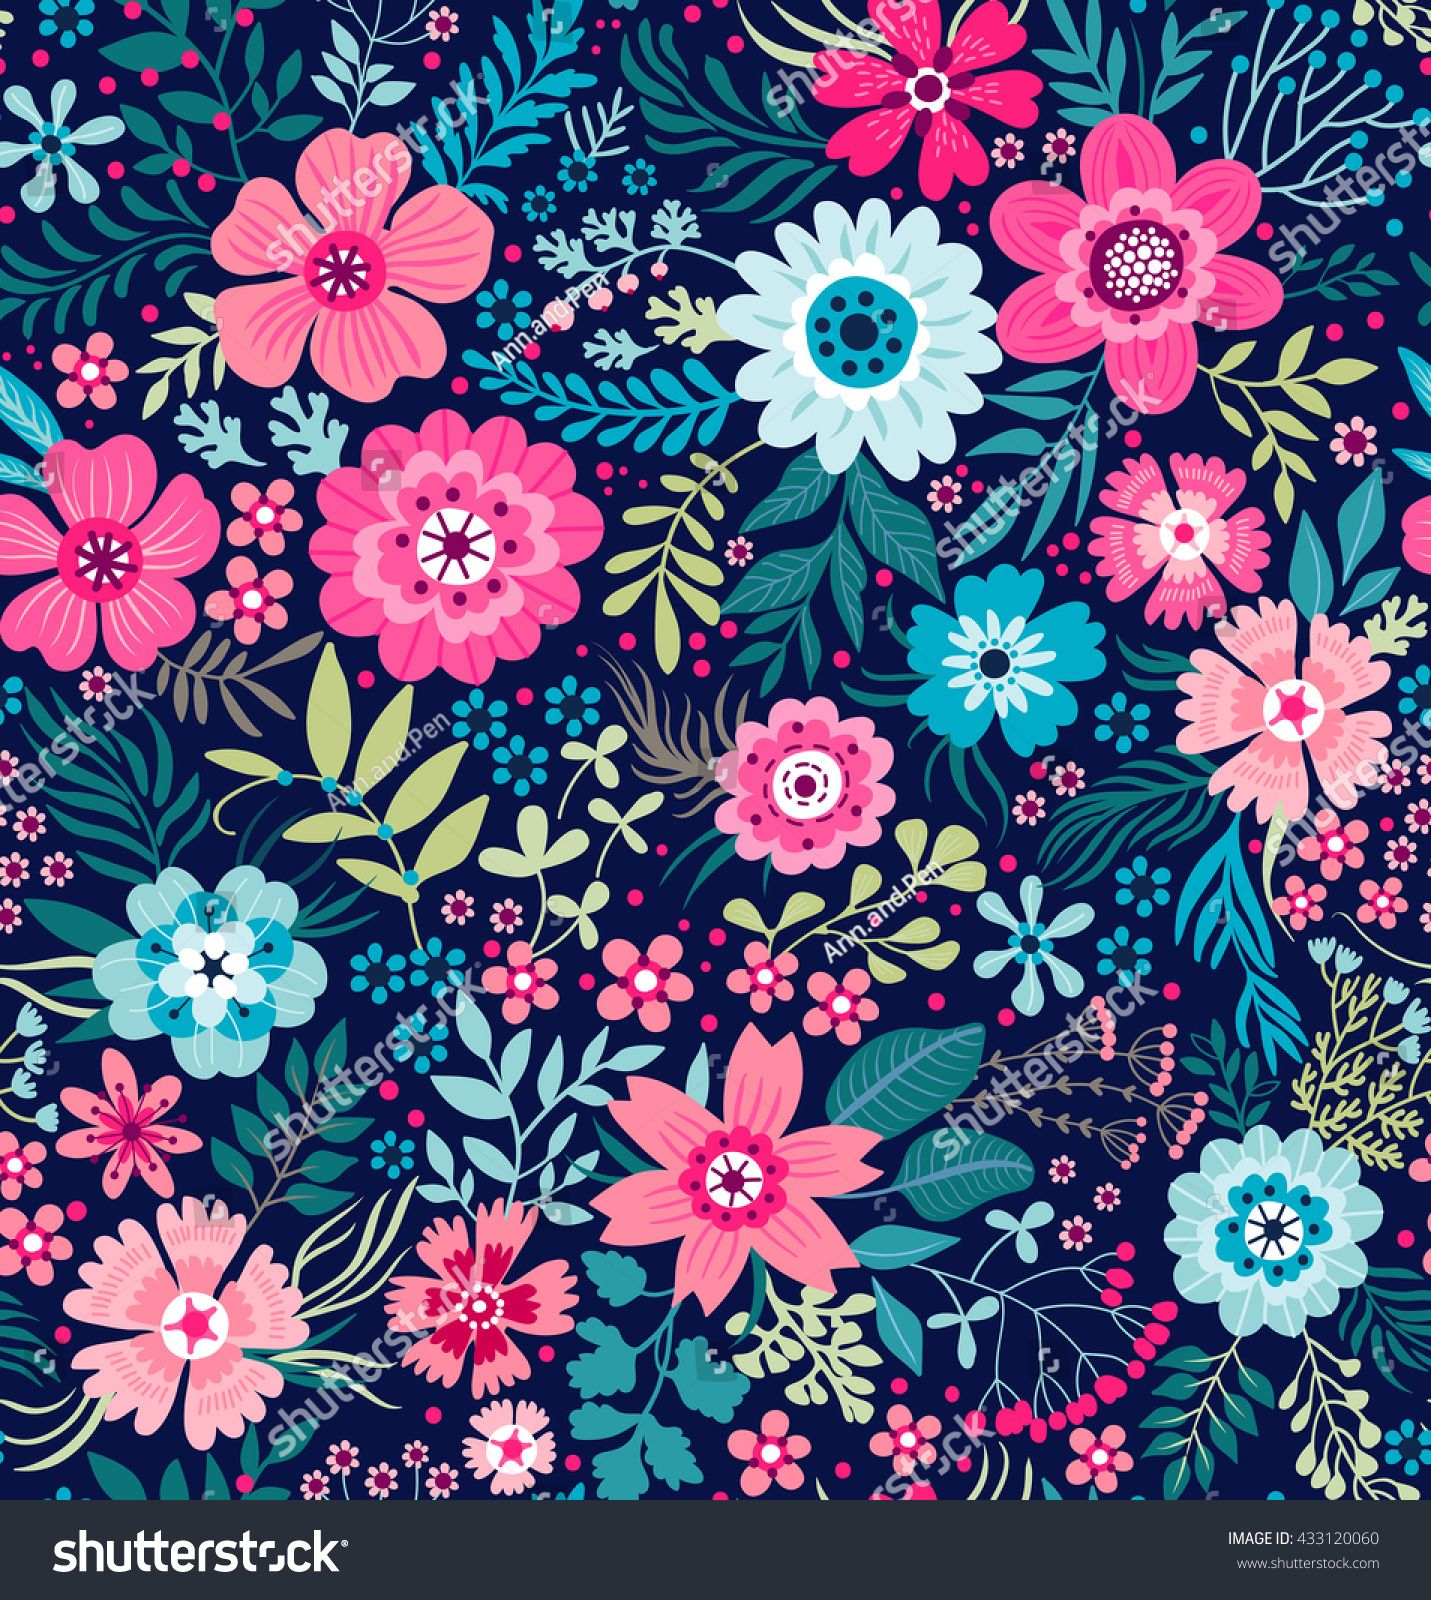 Cute pattern in small flower. Small colorful flowers